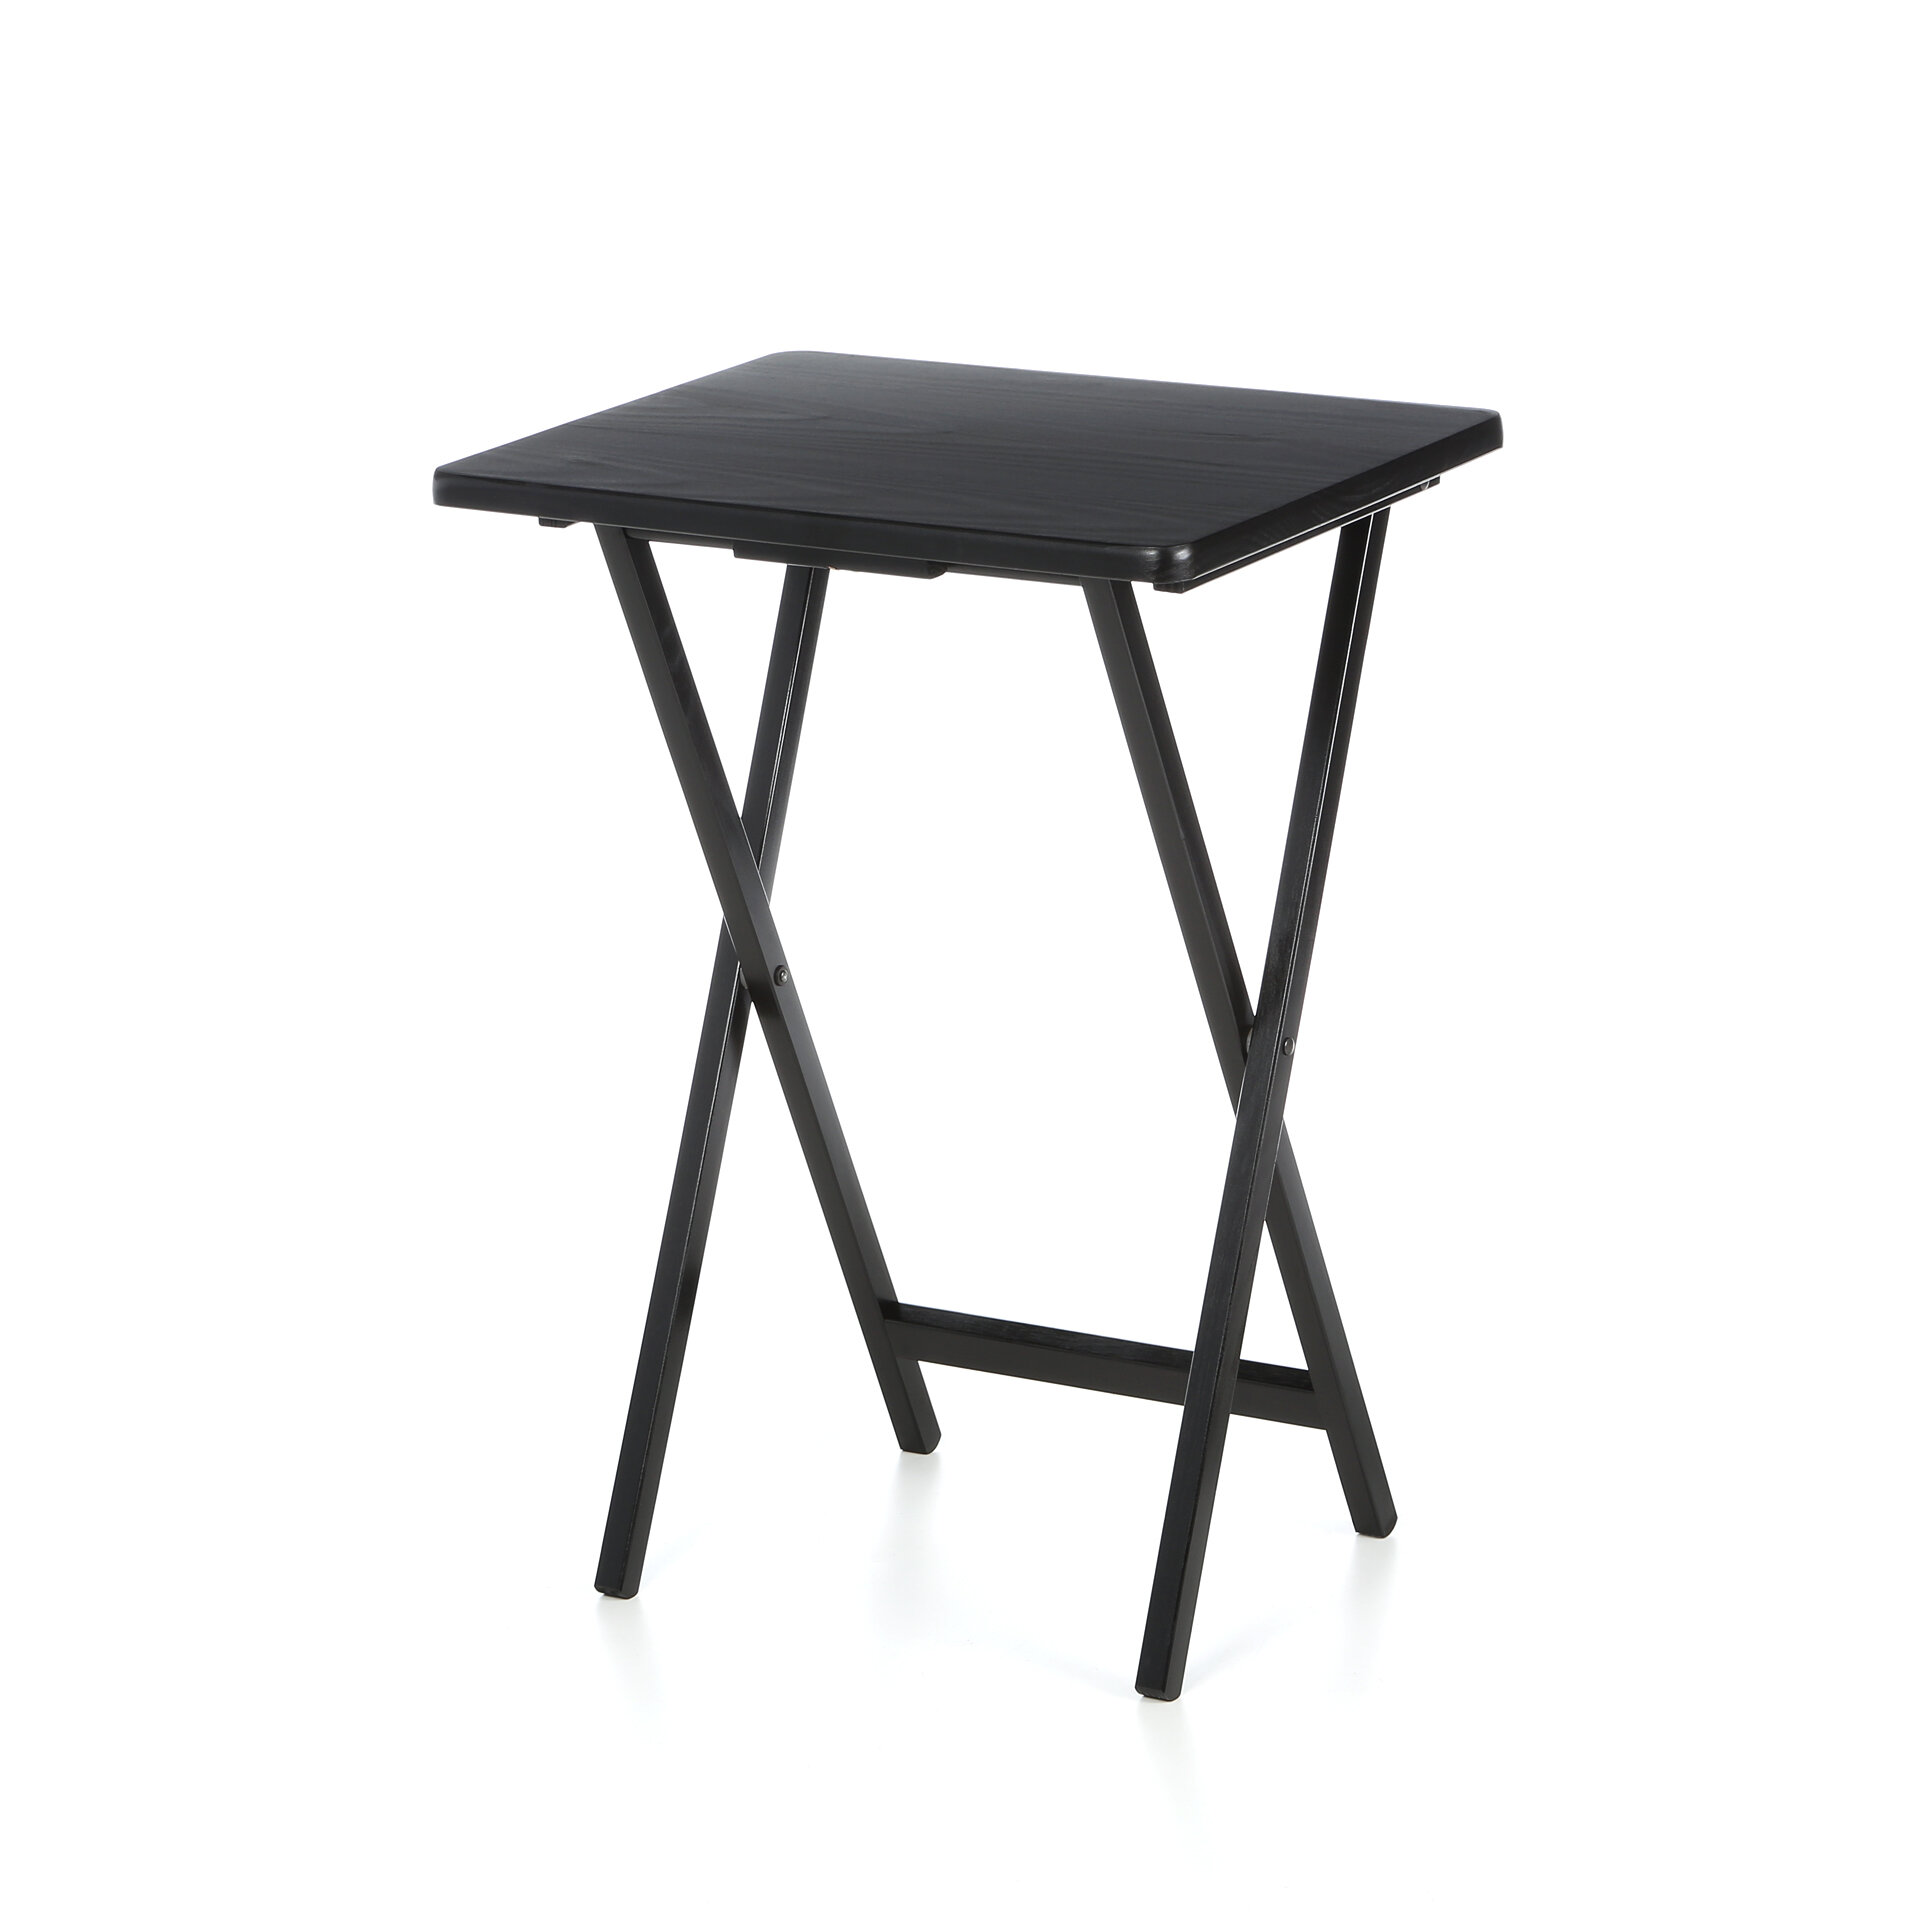 Genial Ledbury Folding TV Tray Table With Stand